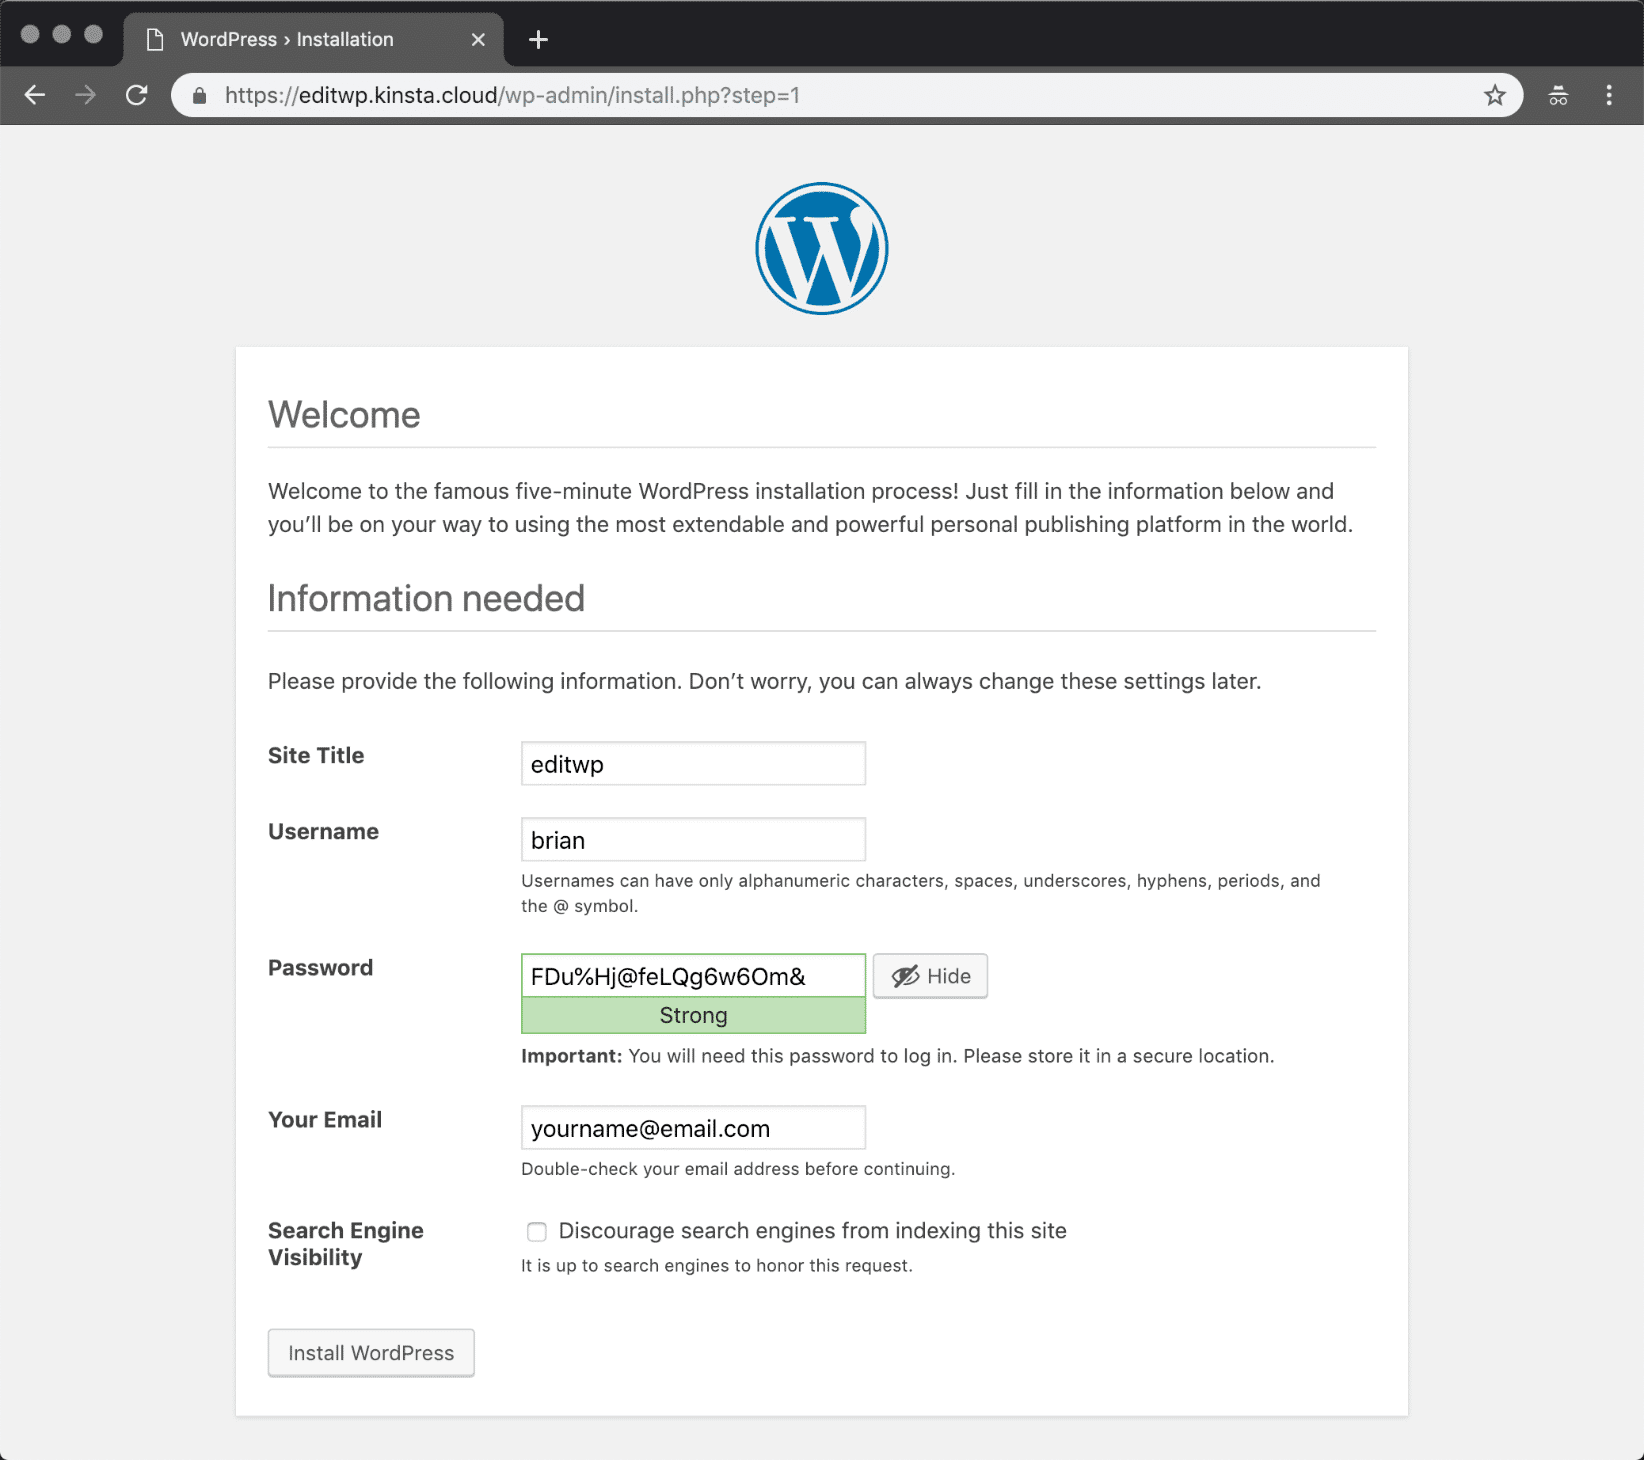 Instalando manualmente WordPress – Información requerida